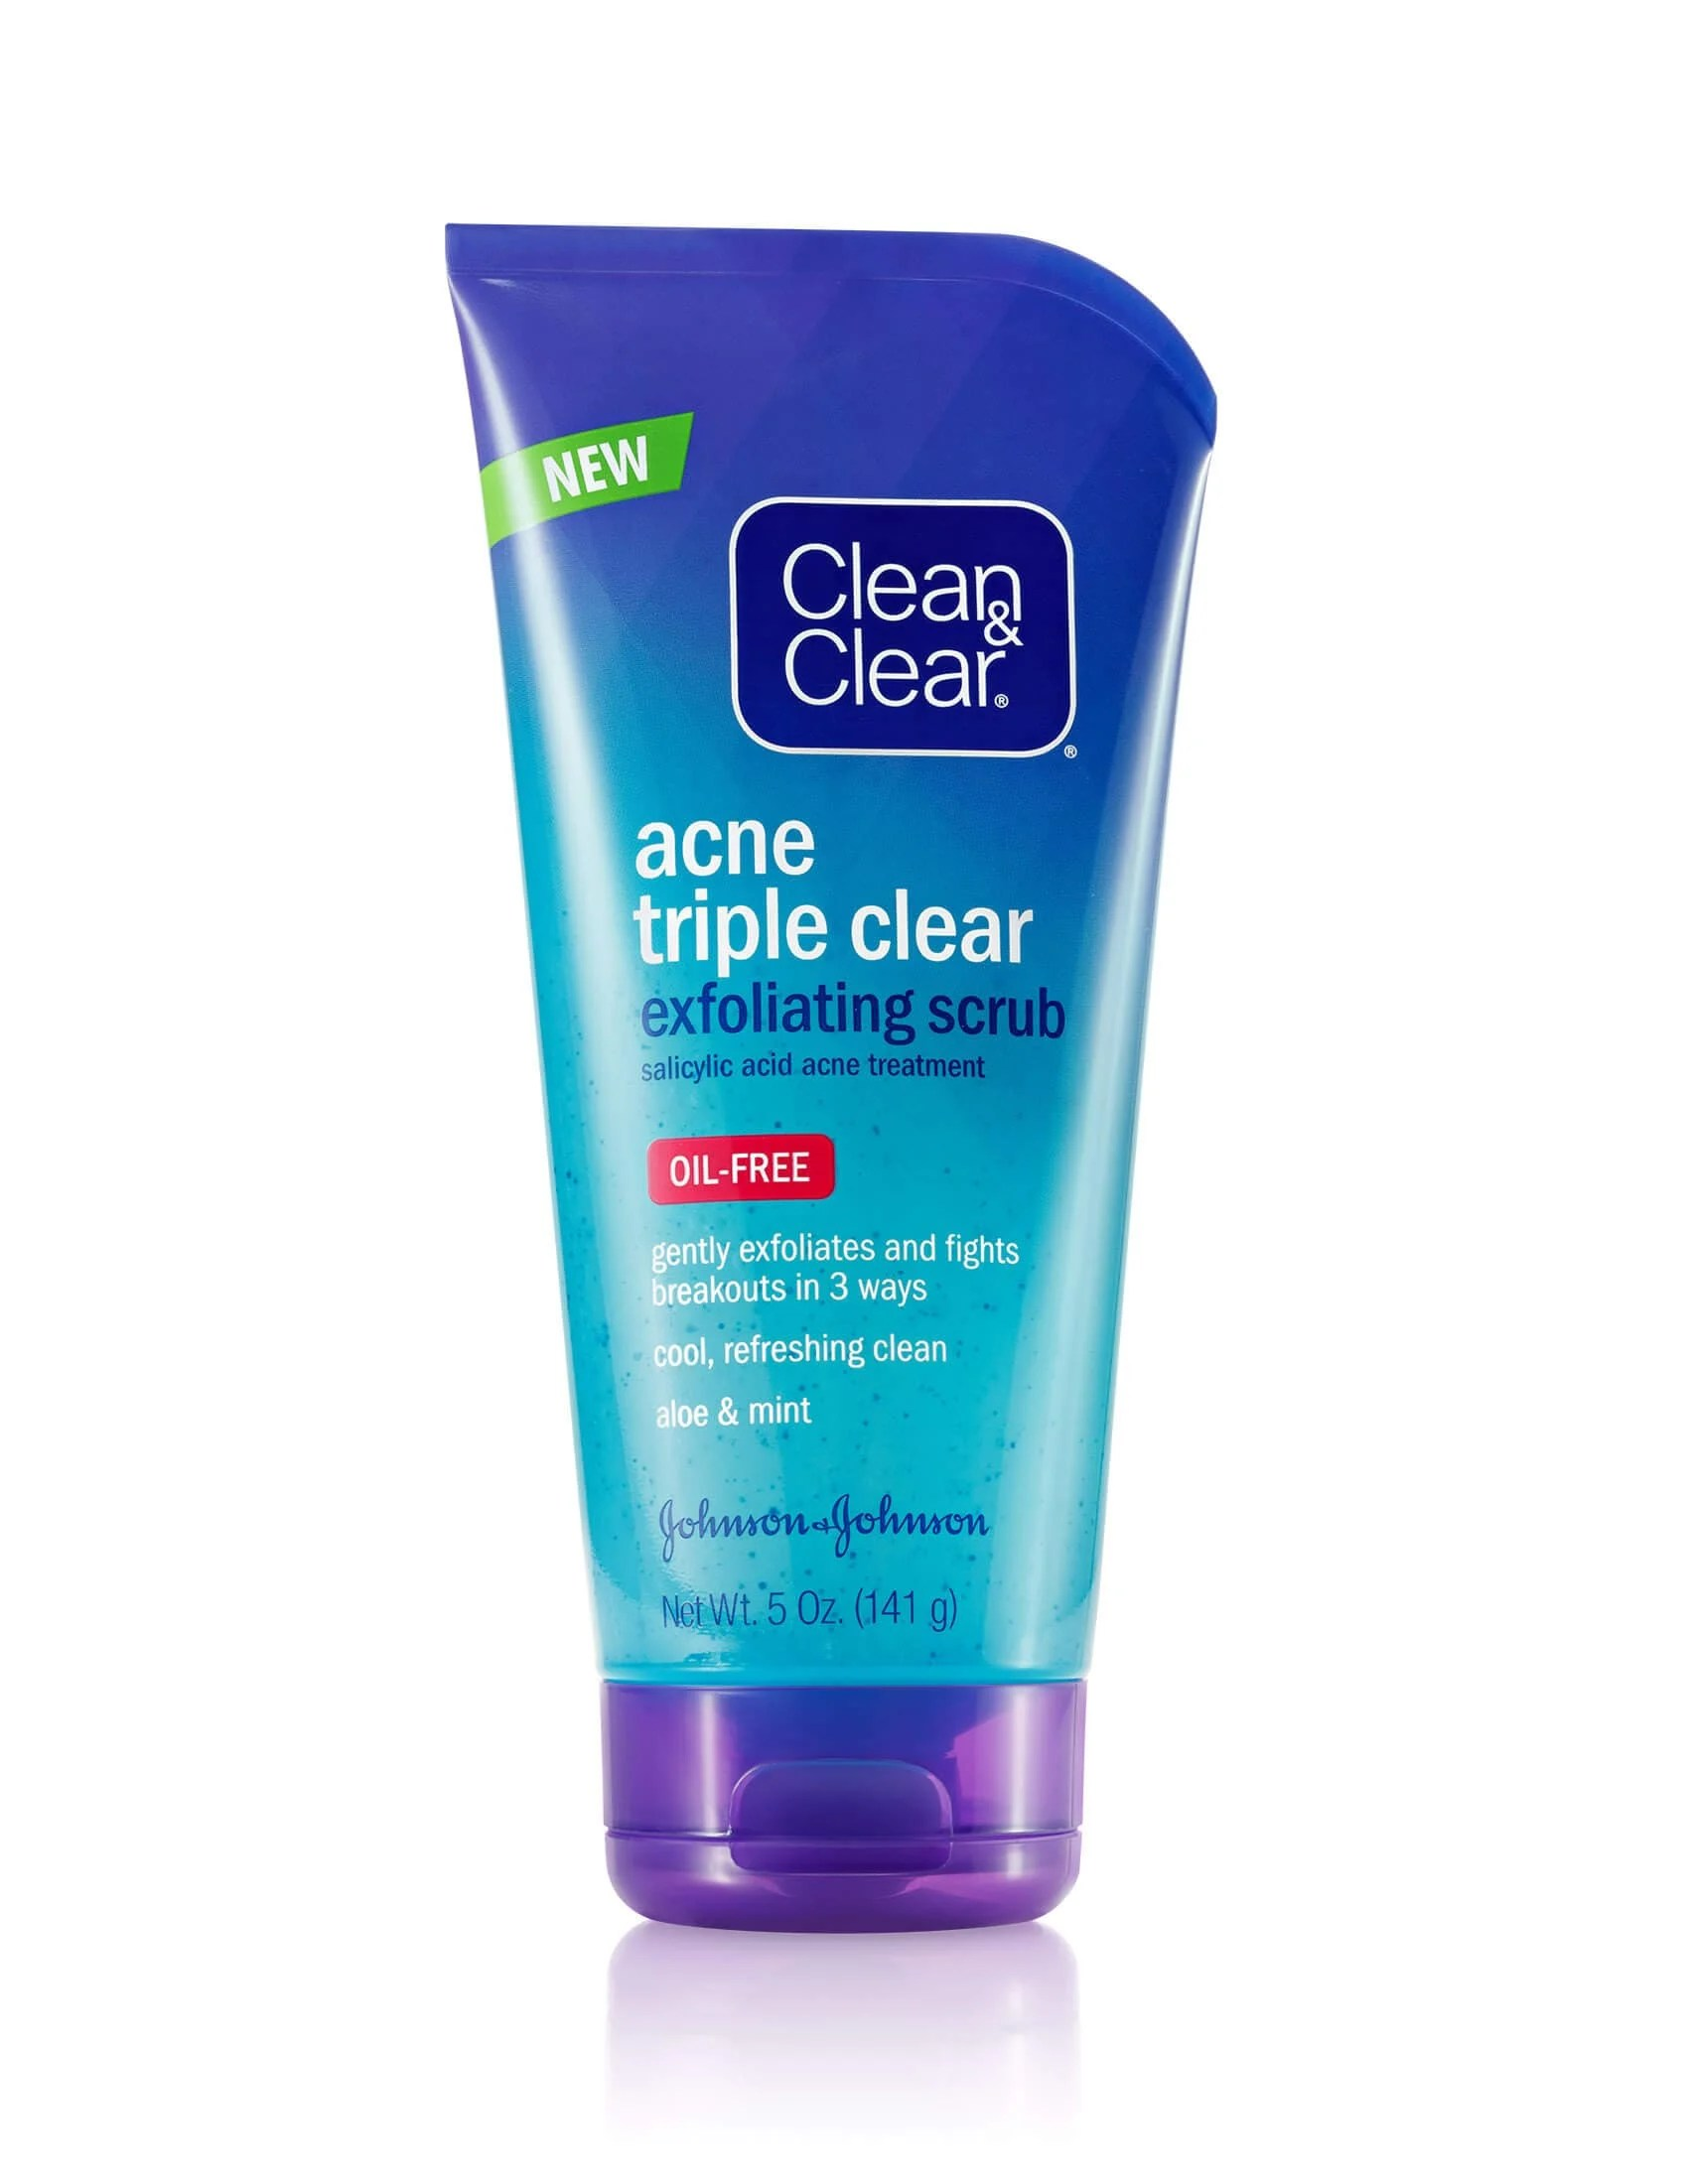 Skin Care Review Sites